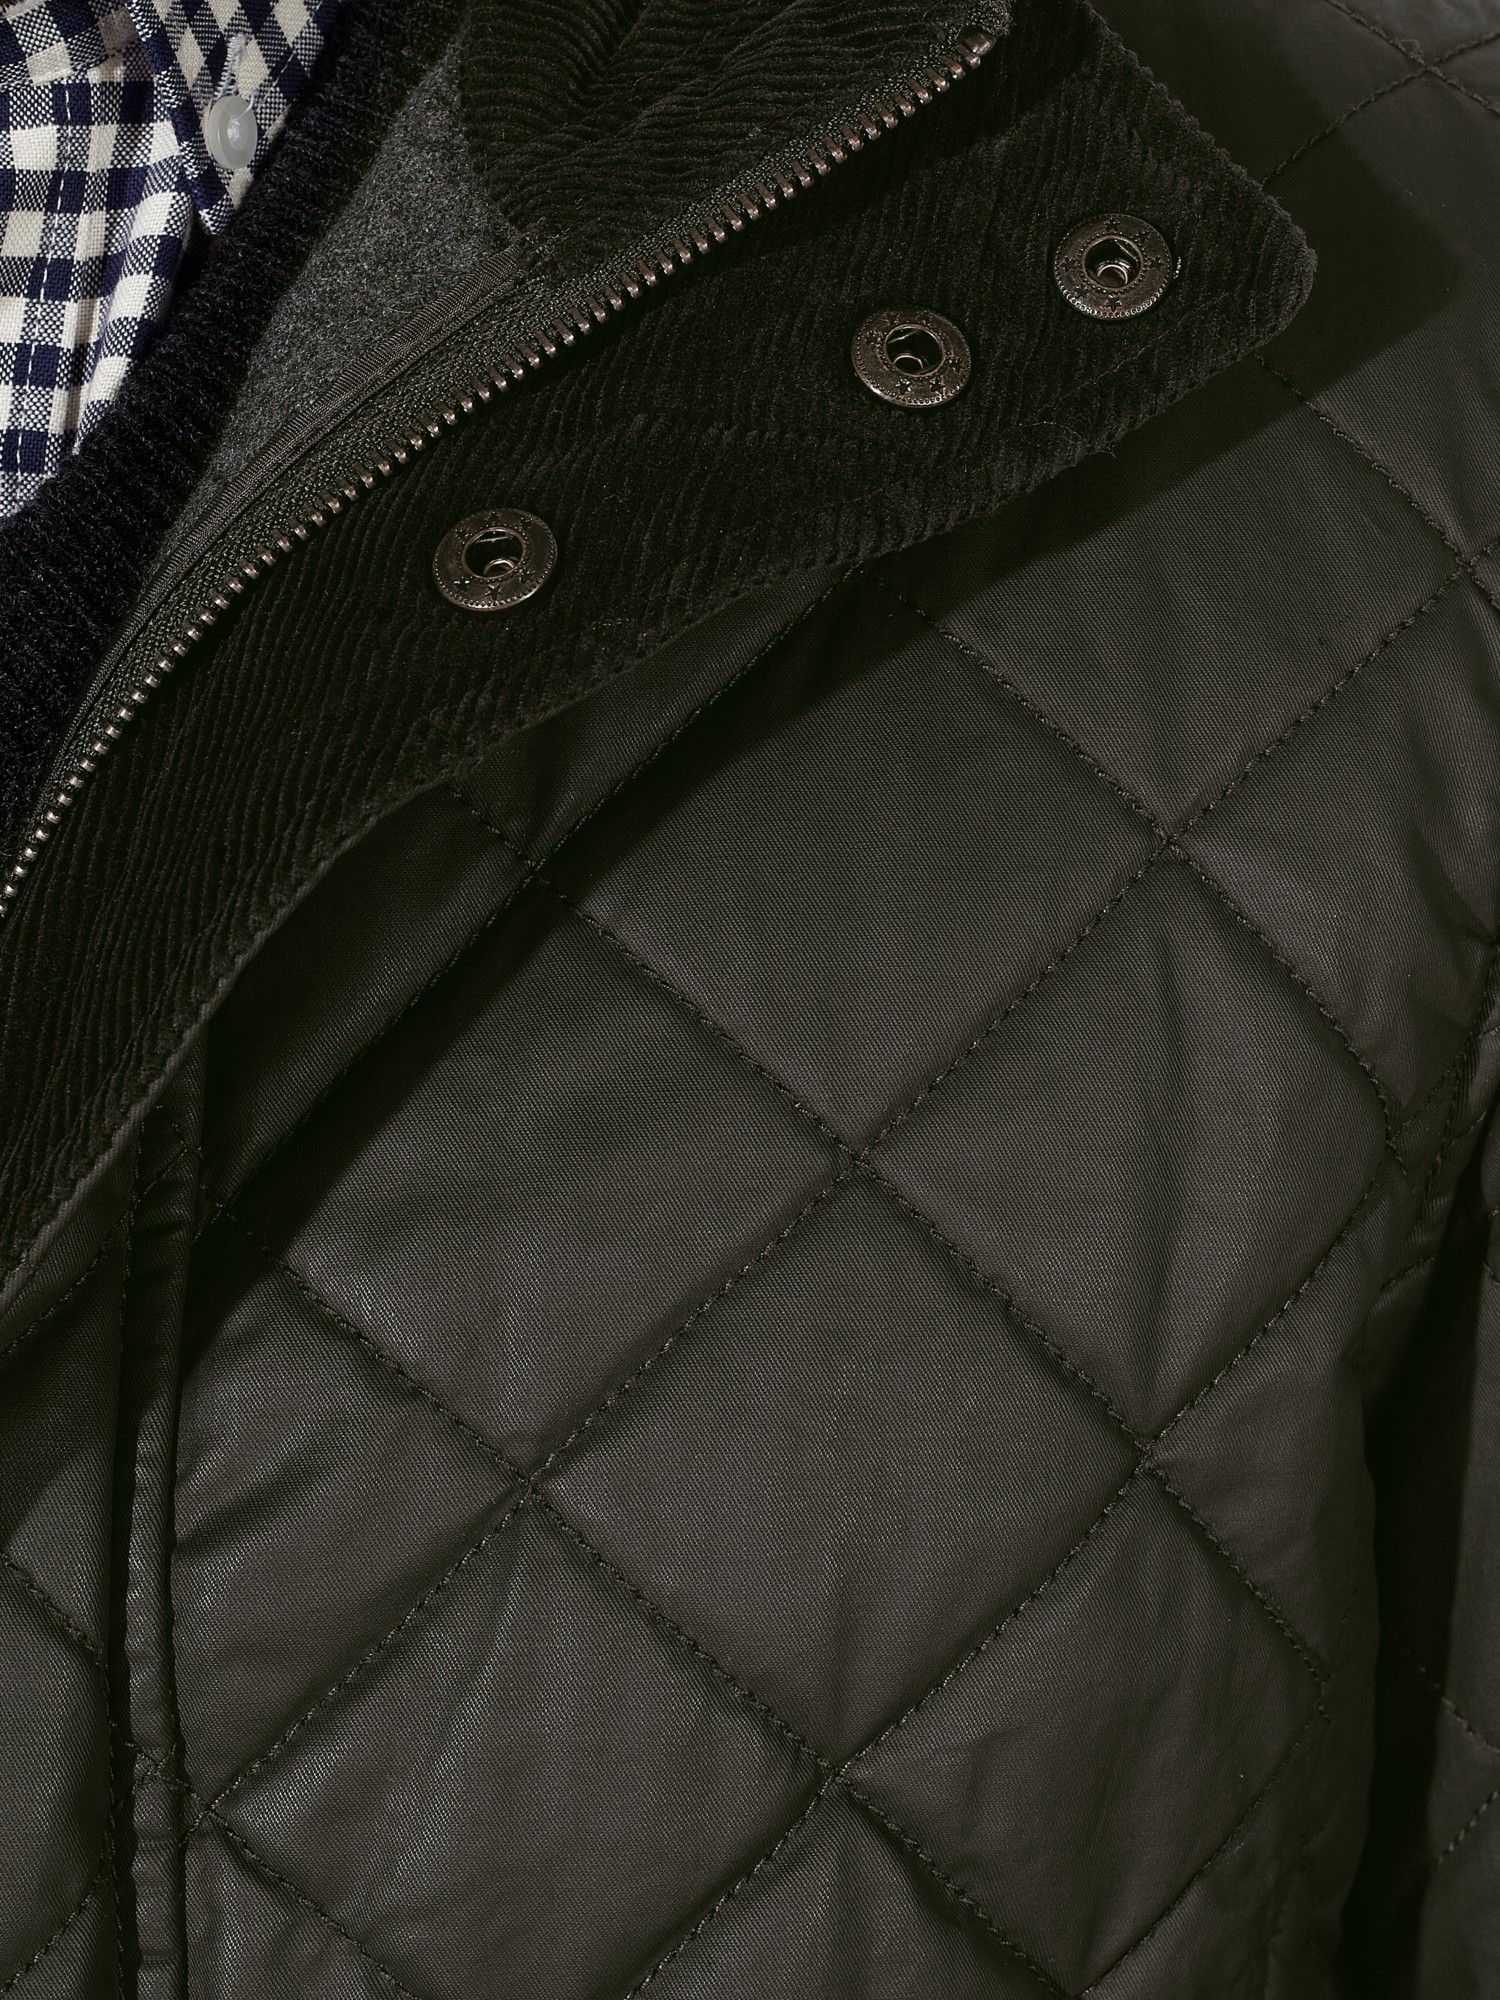 John Lewis Waxed Cotton Quilted Jacket In Green For Men Lyst